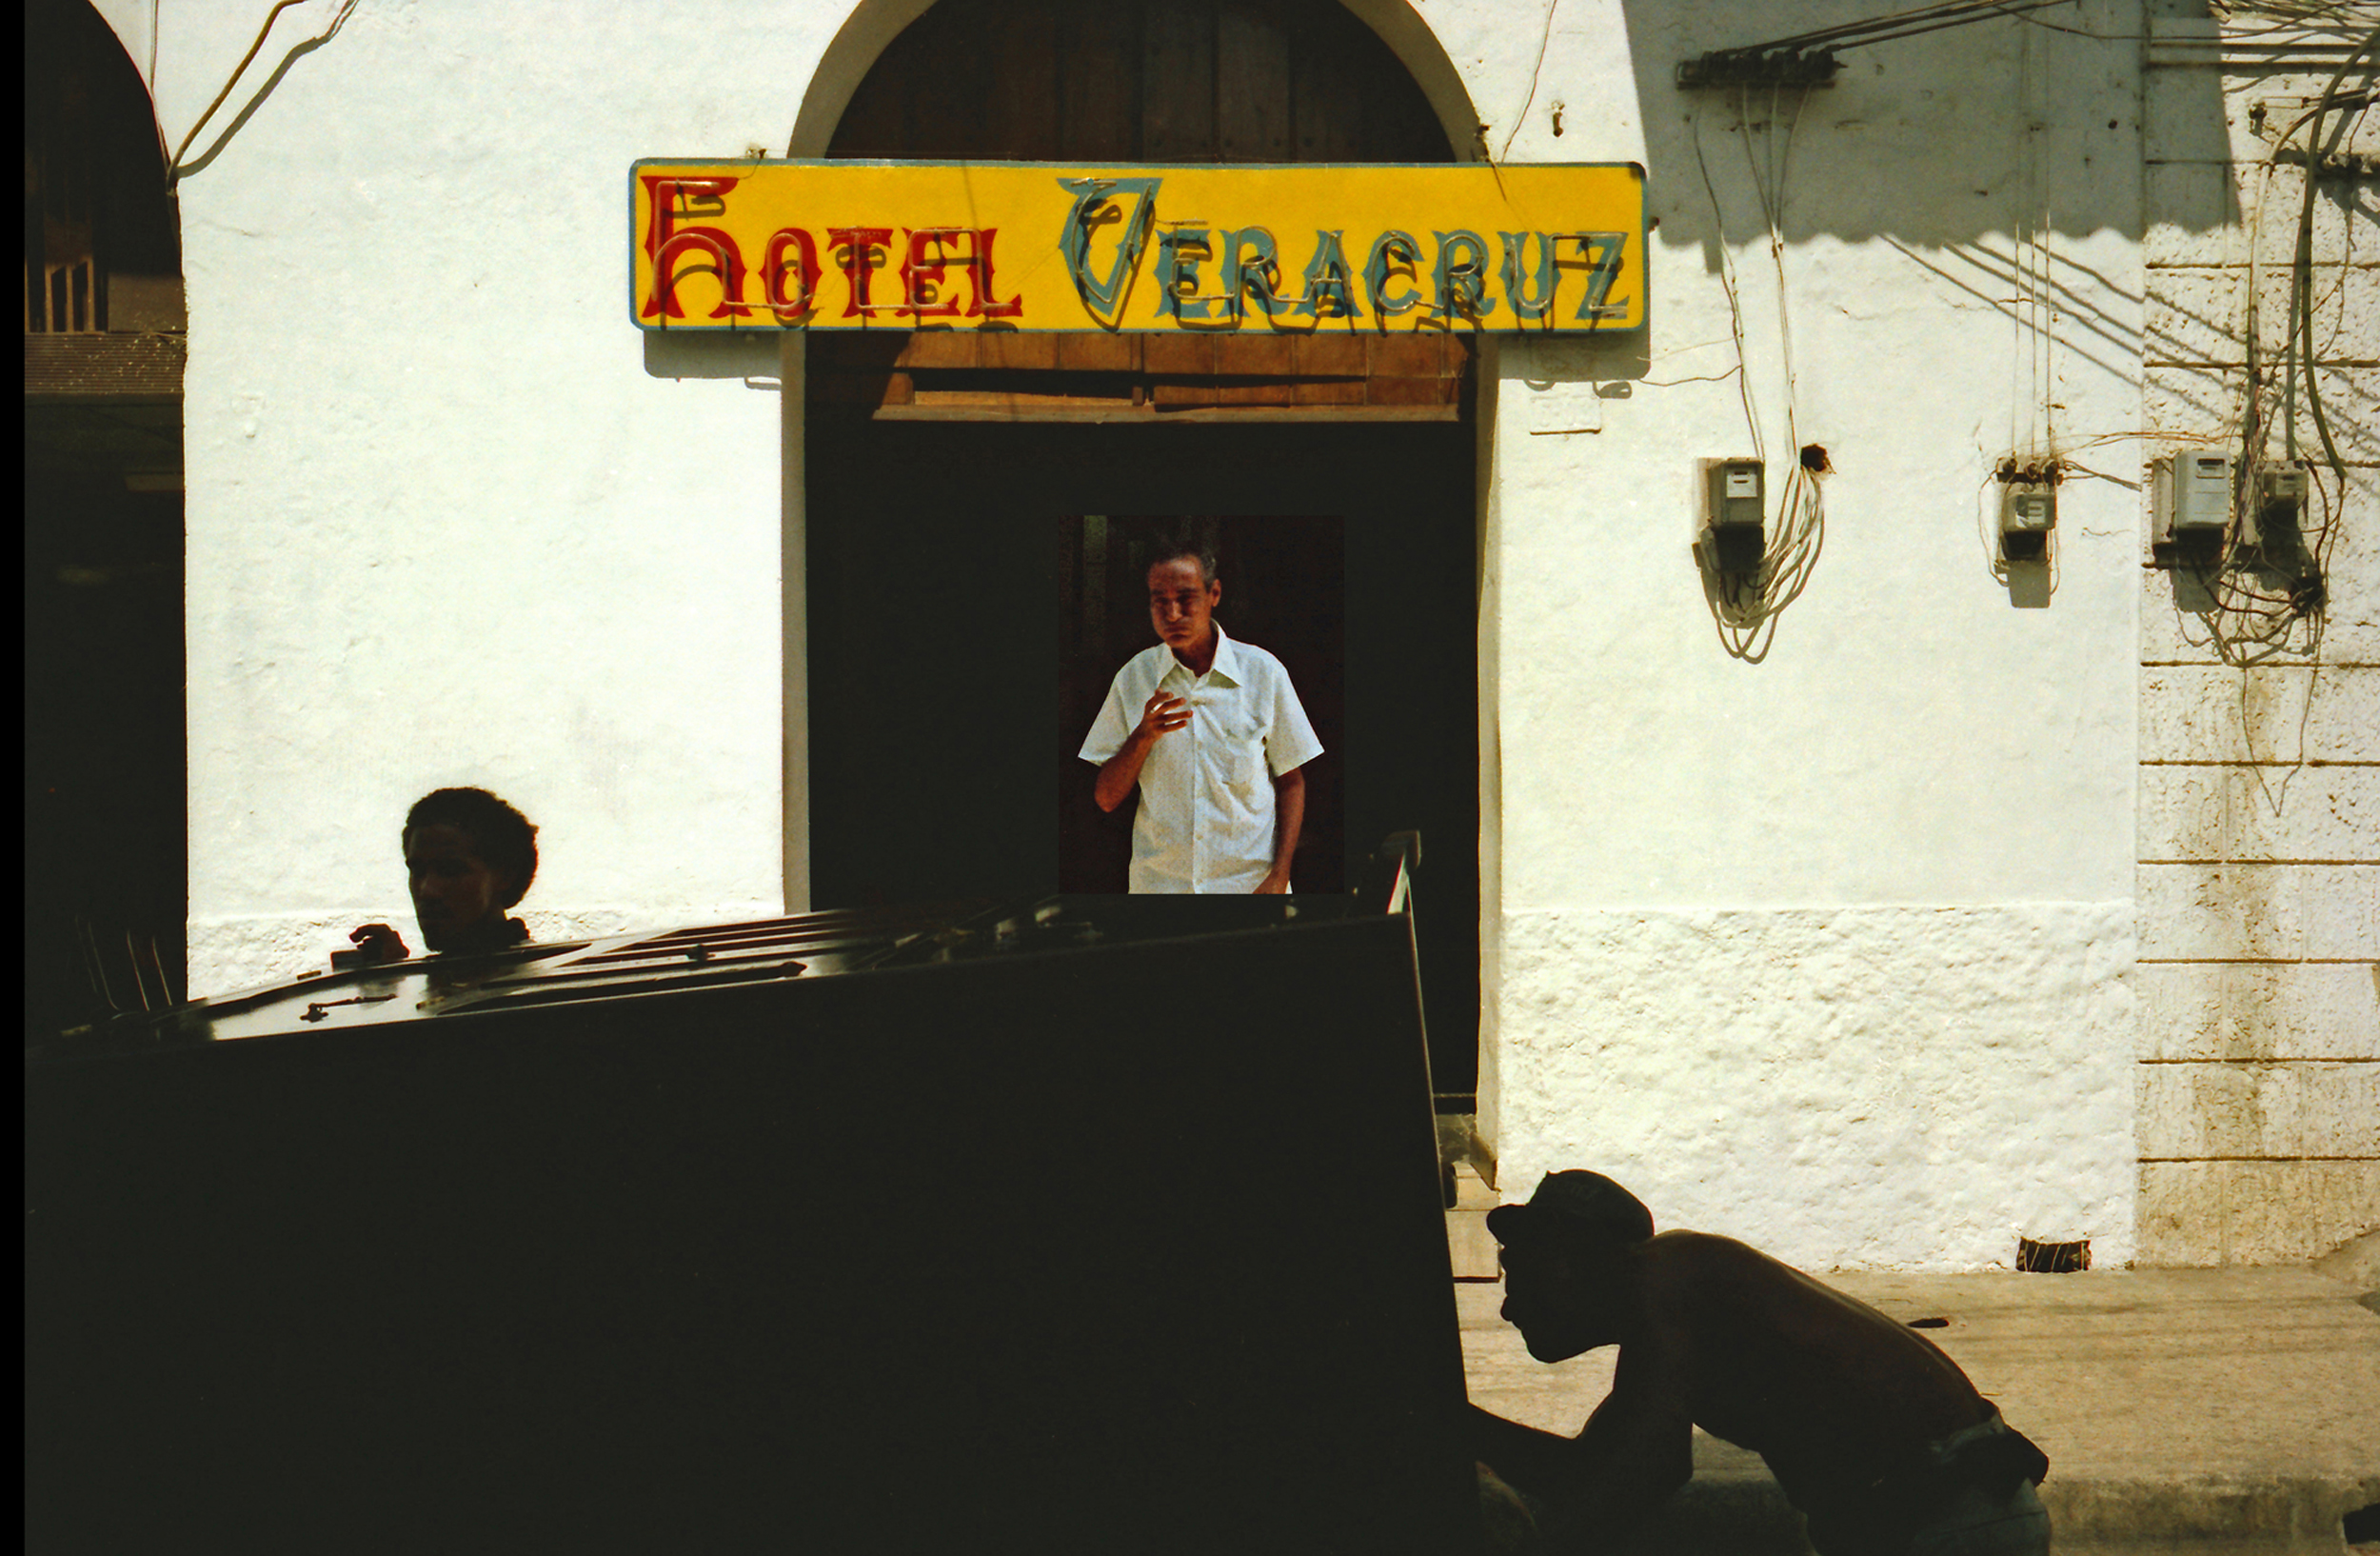 Hotel Veracruz For Medium.jpg